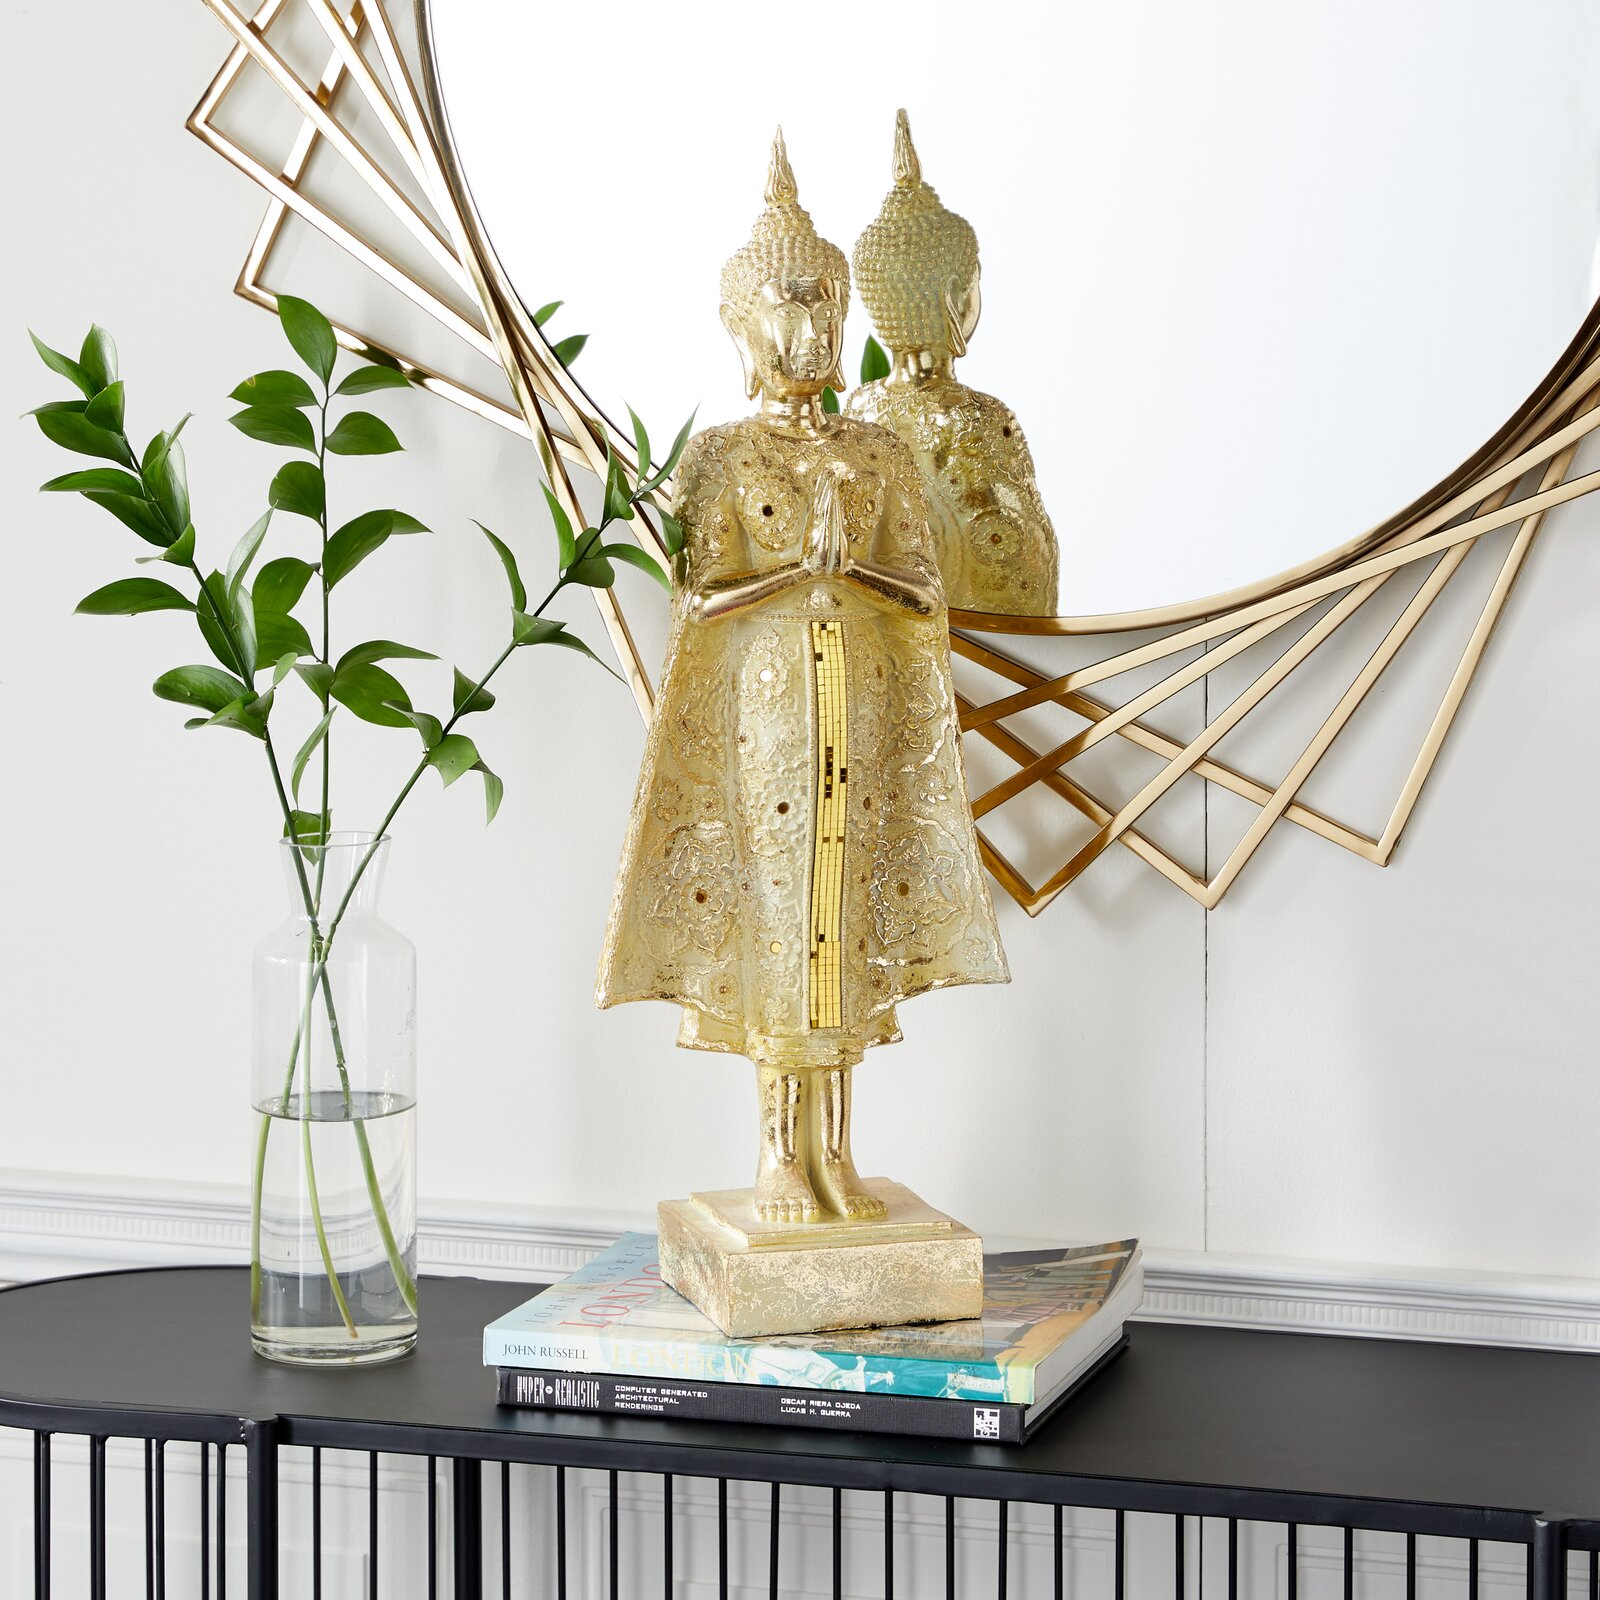 standing-buddha-statue-beautiful-gold-finish-and-ivory-details-25-inch-tall-spiritual-decor-for-modern-interior-design